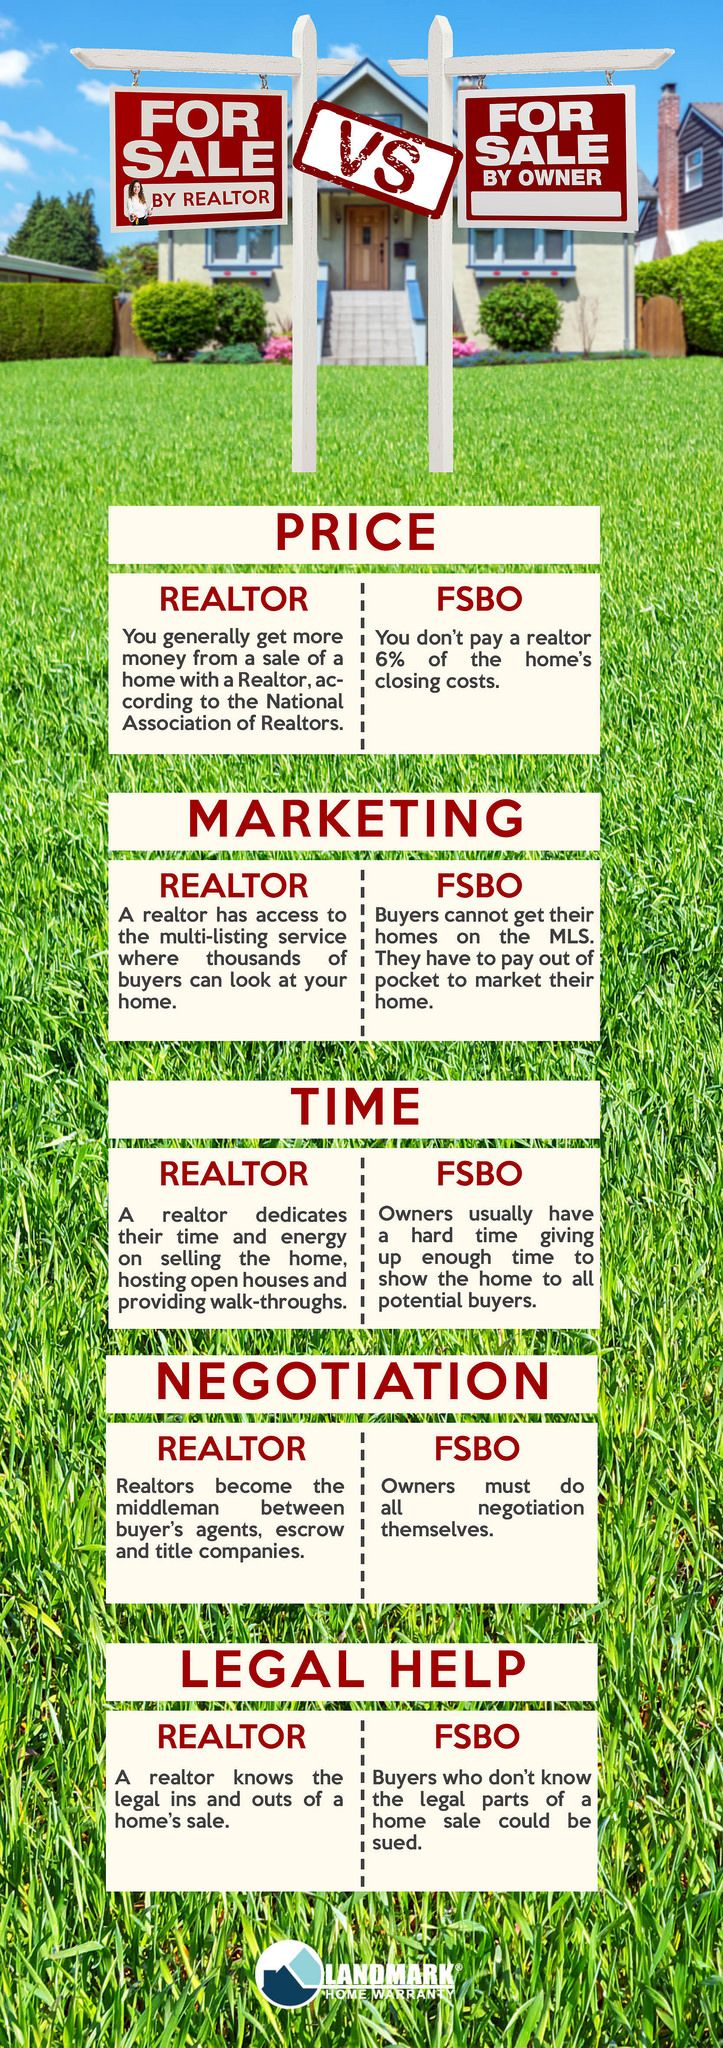 For Sale By Owner vs. Realtor   www.MyFSBOCoach.com #FSBOTips #FSBO